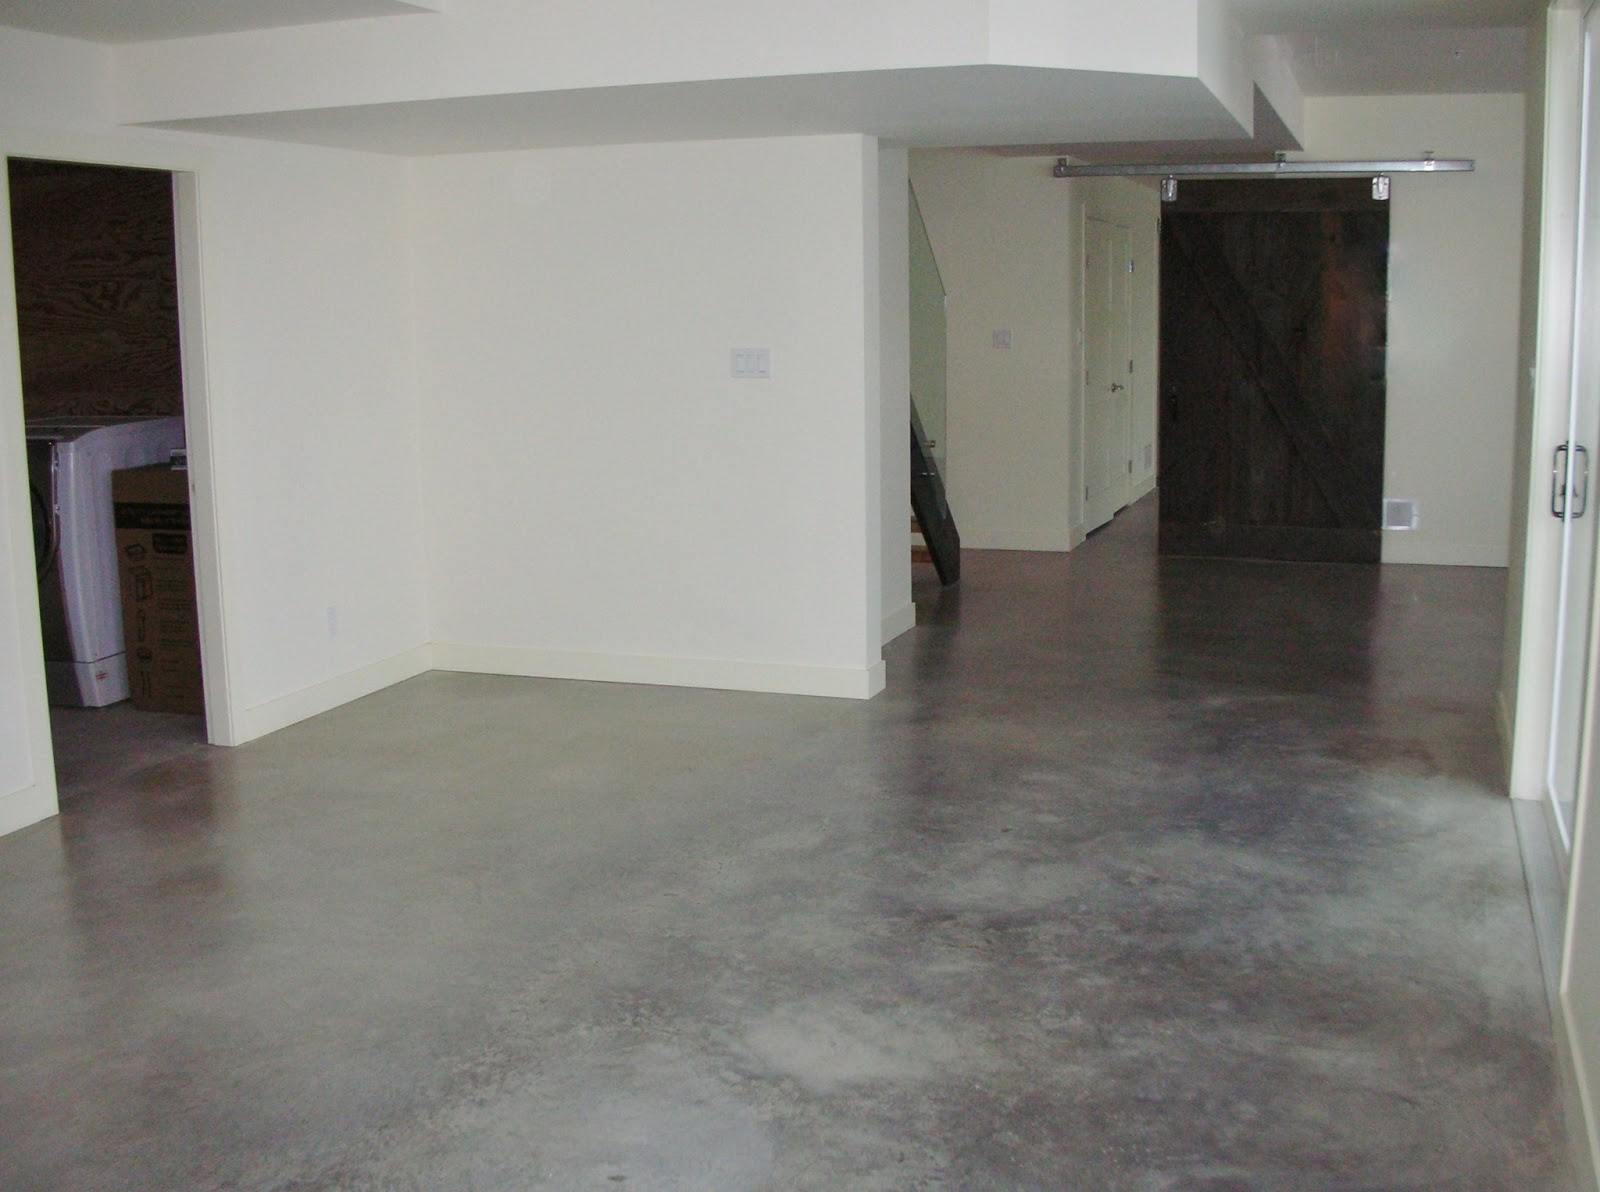 is known to be one of the best alternatives to finish concrete floors